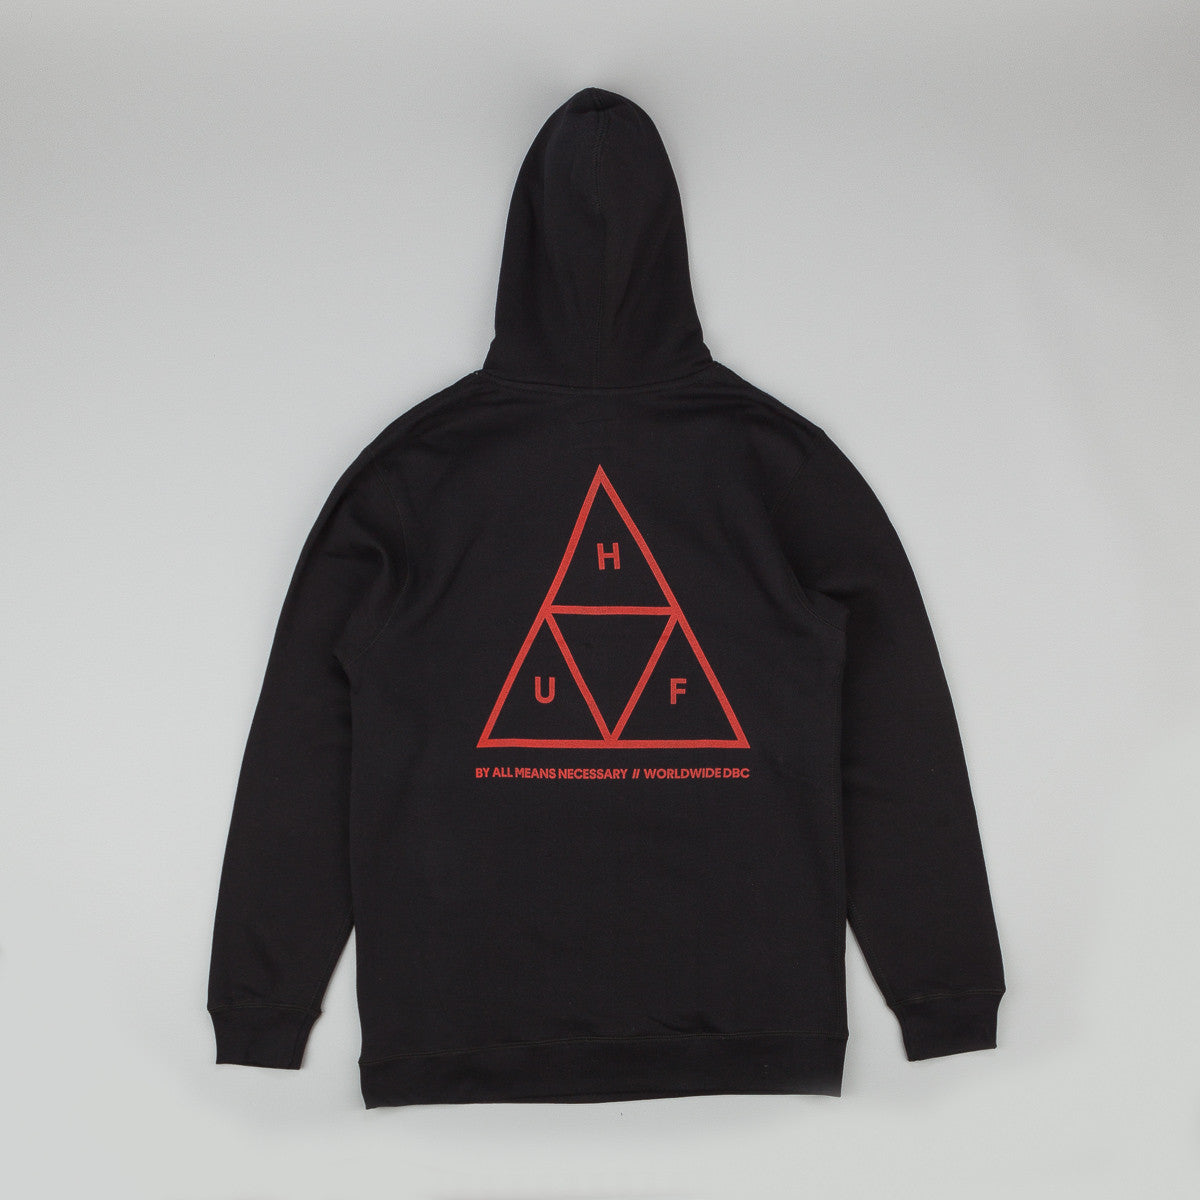 HUF Triple Triangle Fleece Hooded Sweatshirt - Black / Red